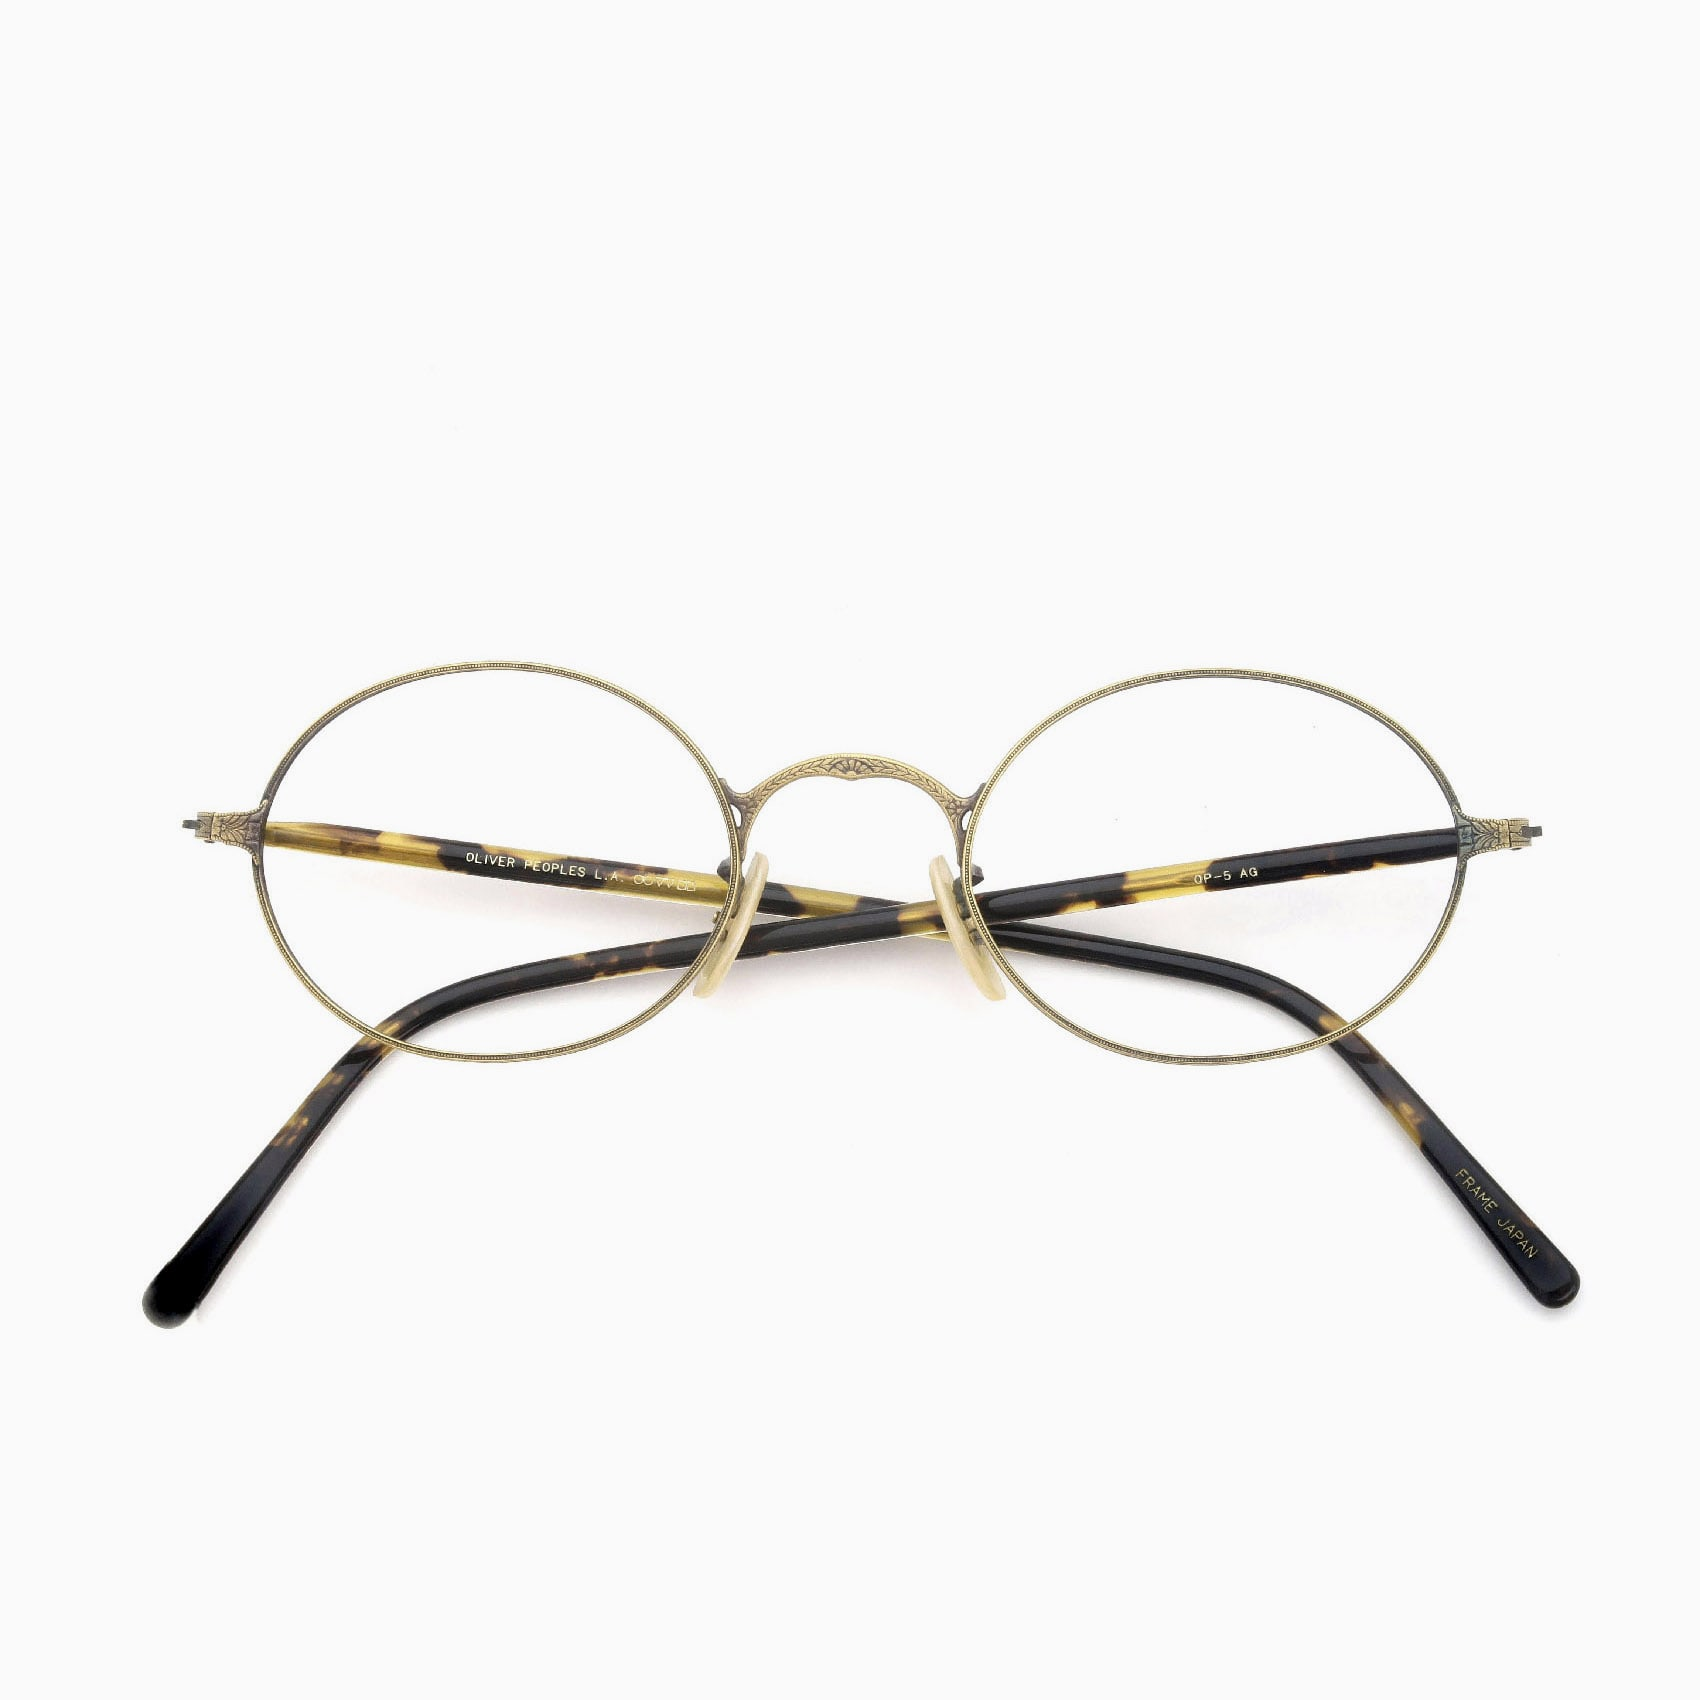 OLIVER-PEOPLES ARCHIVE OP-5 AG